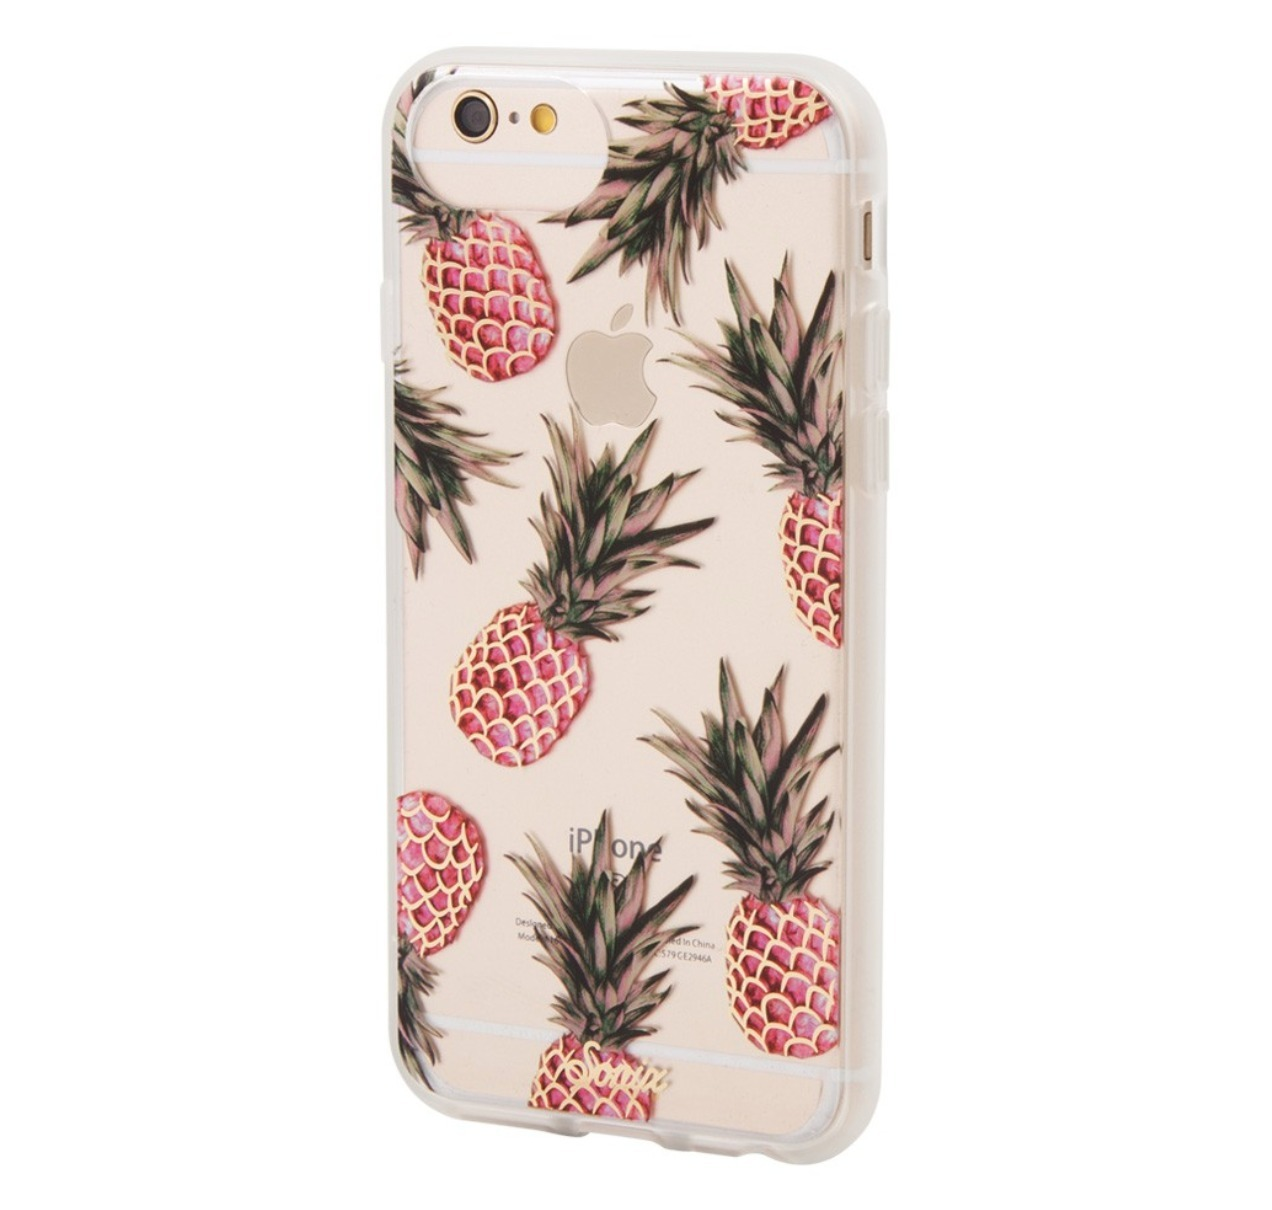 ☆Sonix Pina Colada iPhone 6/6s/7/8 & 6/6s/7/8 Plus Case☆